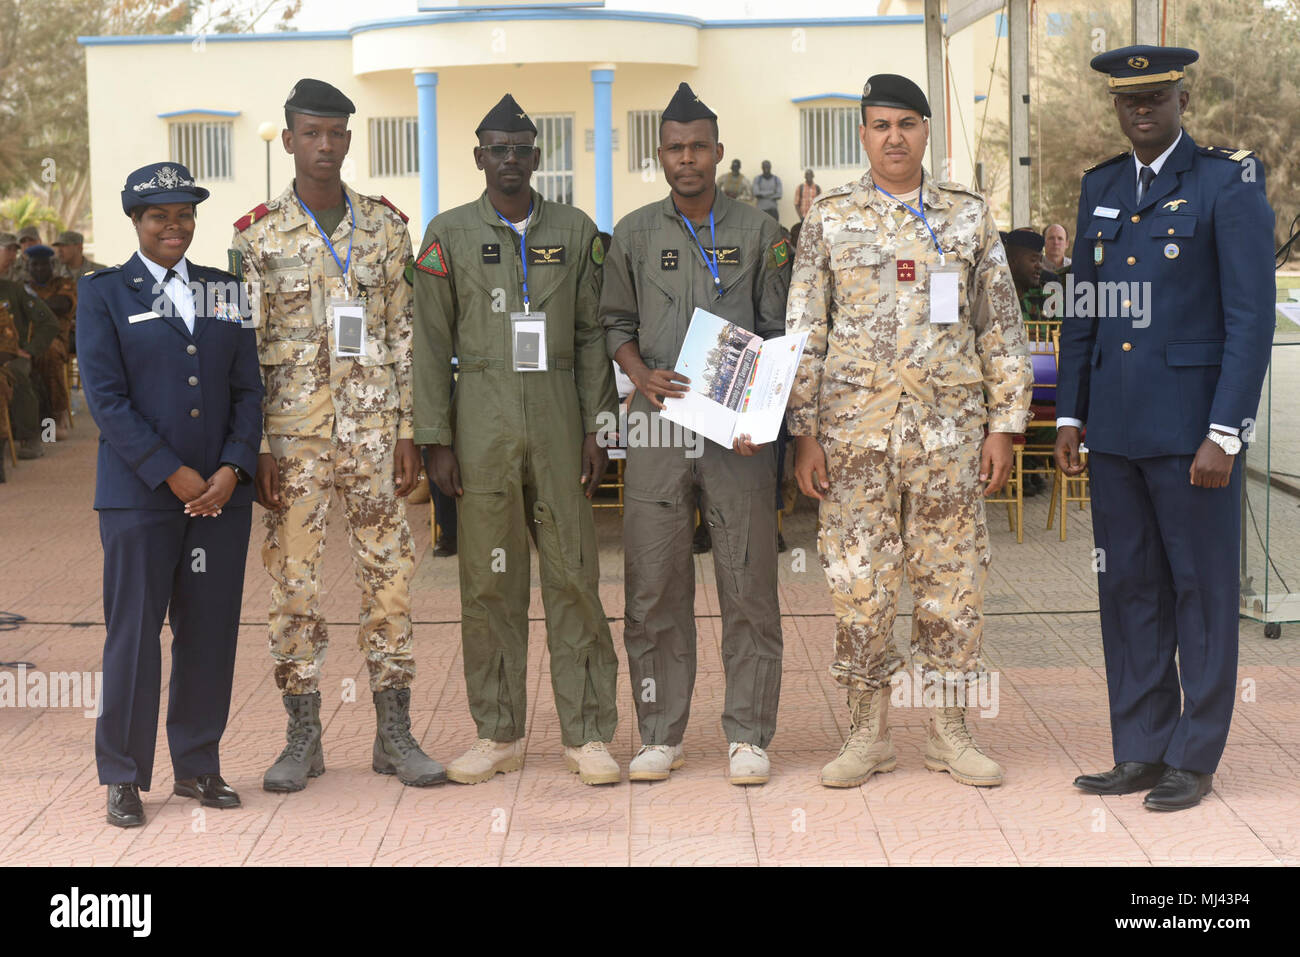 African Partnership Flight participants from Mauritania pose for a photo after the closing ceremony for APF at Captain Andalla Cissé Air Base, Senegal, March 23, 2018. The purpose of APF Senegal is to conduct multilateral, military-to-military engagements and security assistance with African air forces. (U.S. Air Force Image collection celebrating the bravery dedication commitment and sacrifice of U.S. Armed Forces and civilian personnel. - Stock Image